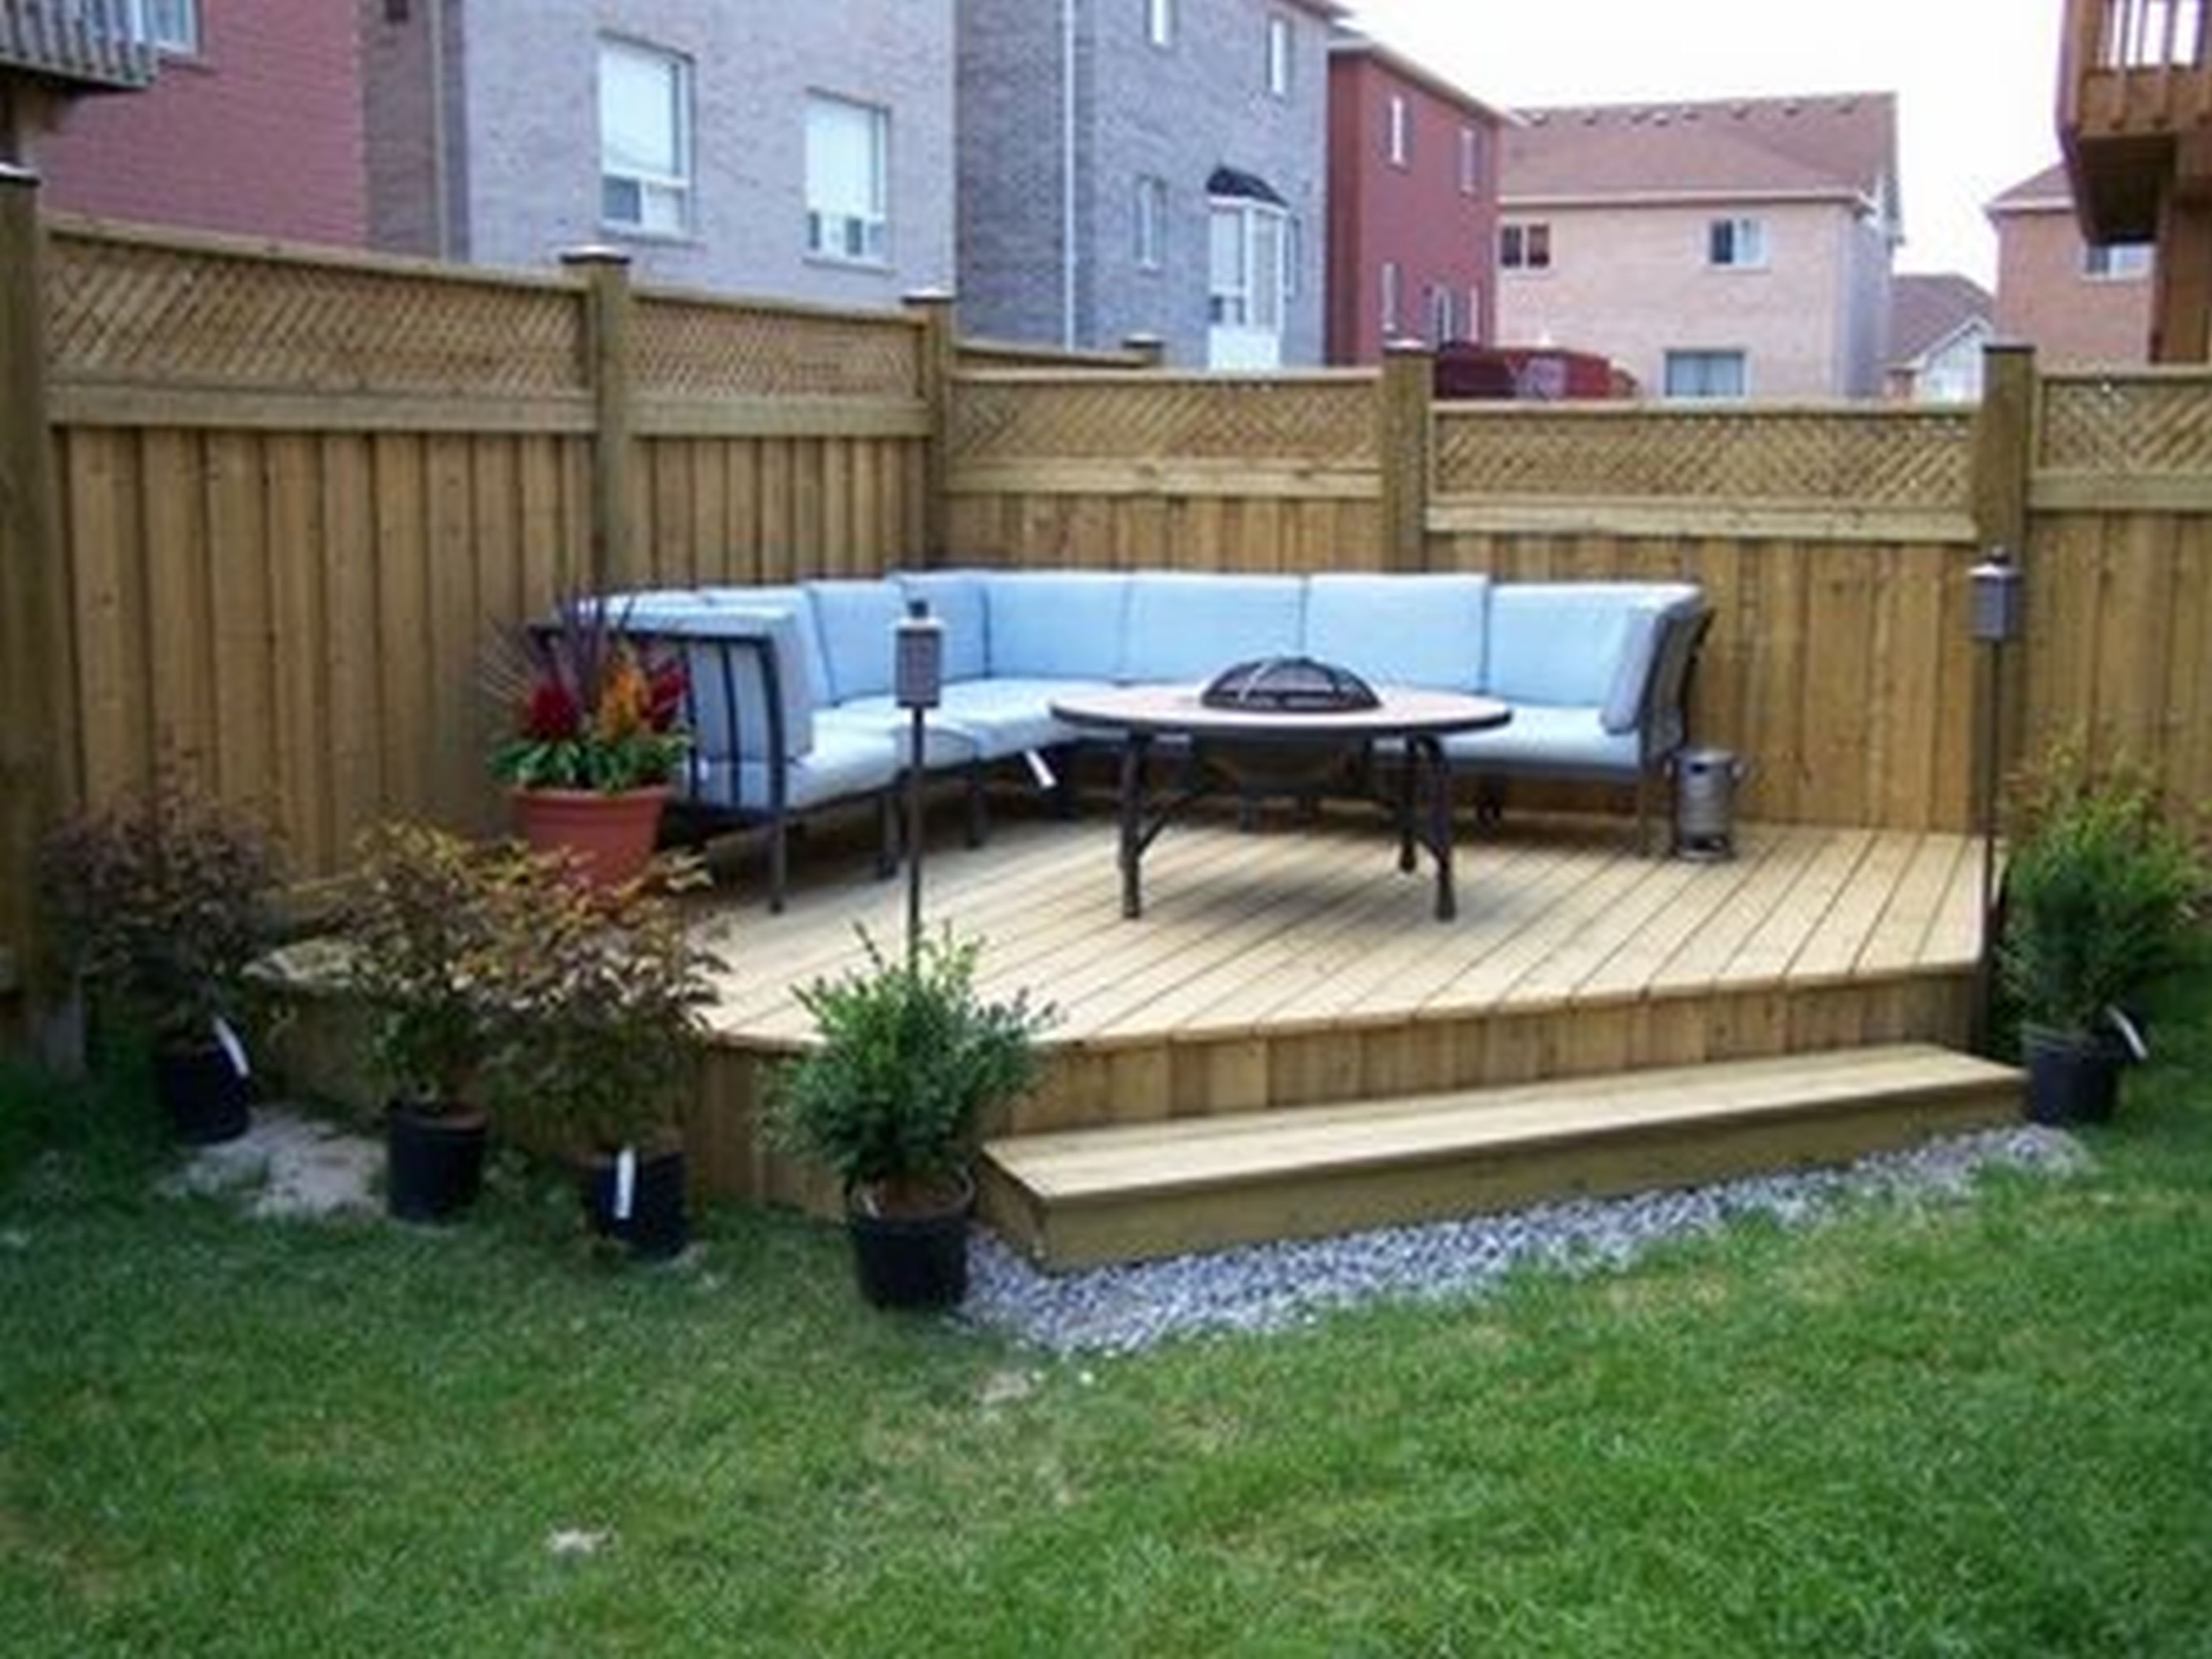 10 Famous Landscape Ideas On A Budget backyard ideas budget on a makeover large and beautiful photos 2021